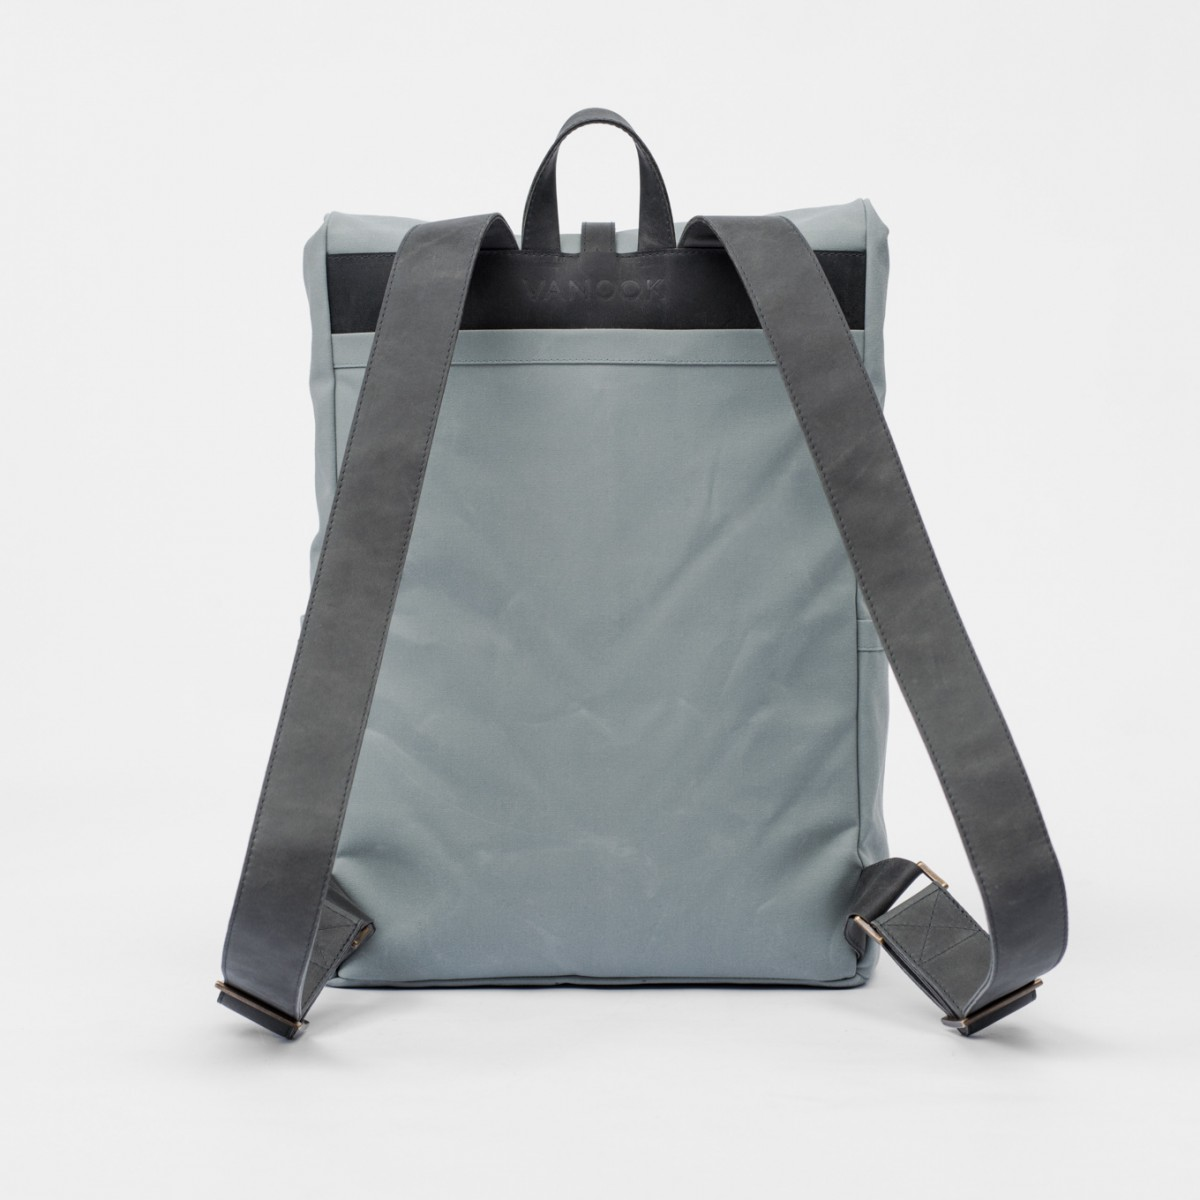 VANOOK Backpack Oyster / Stone